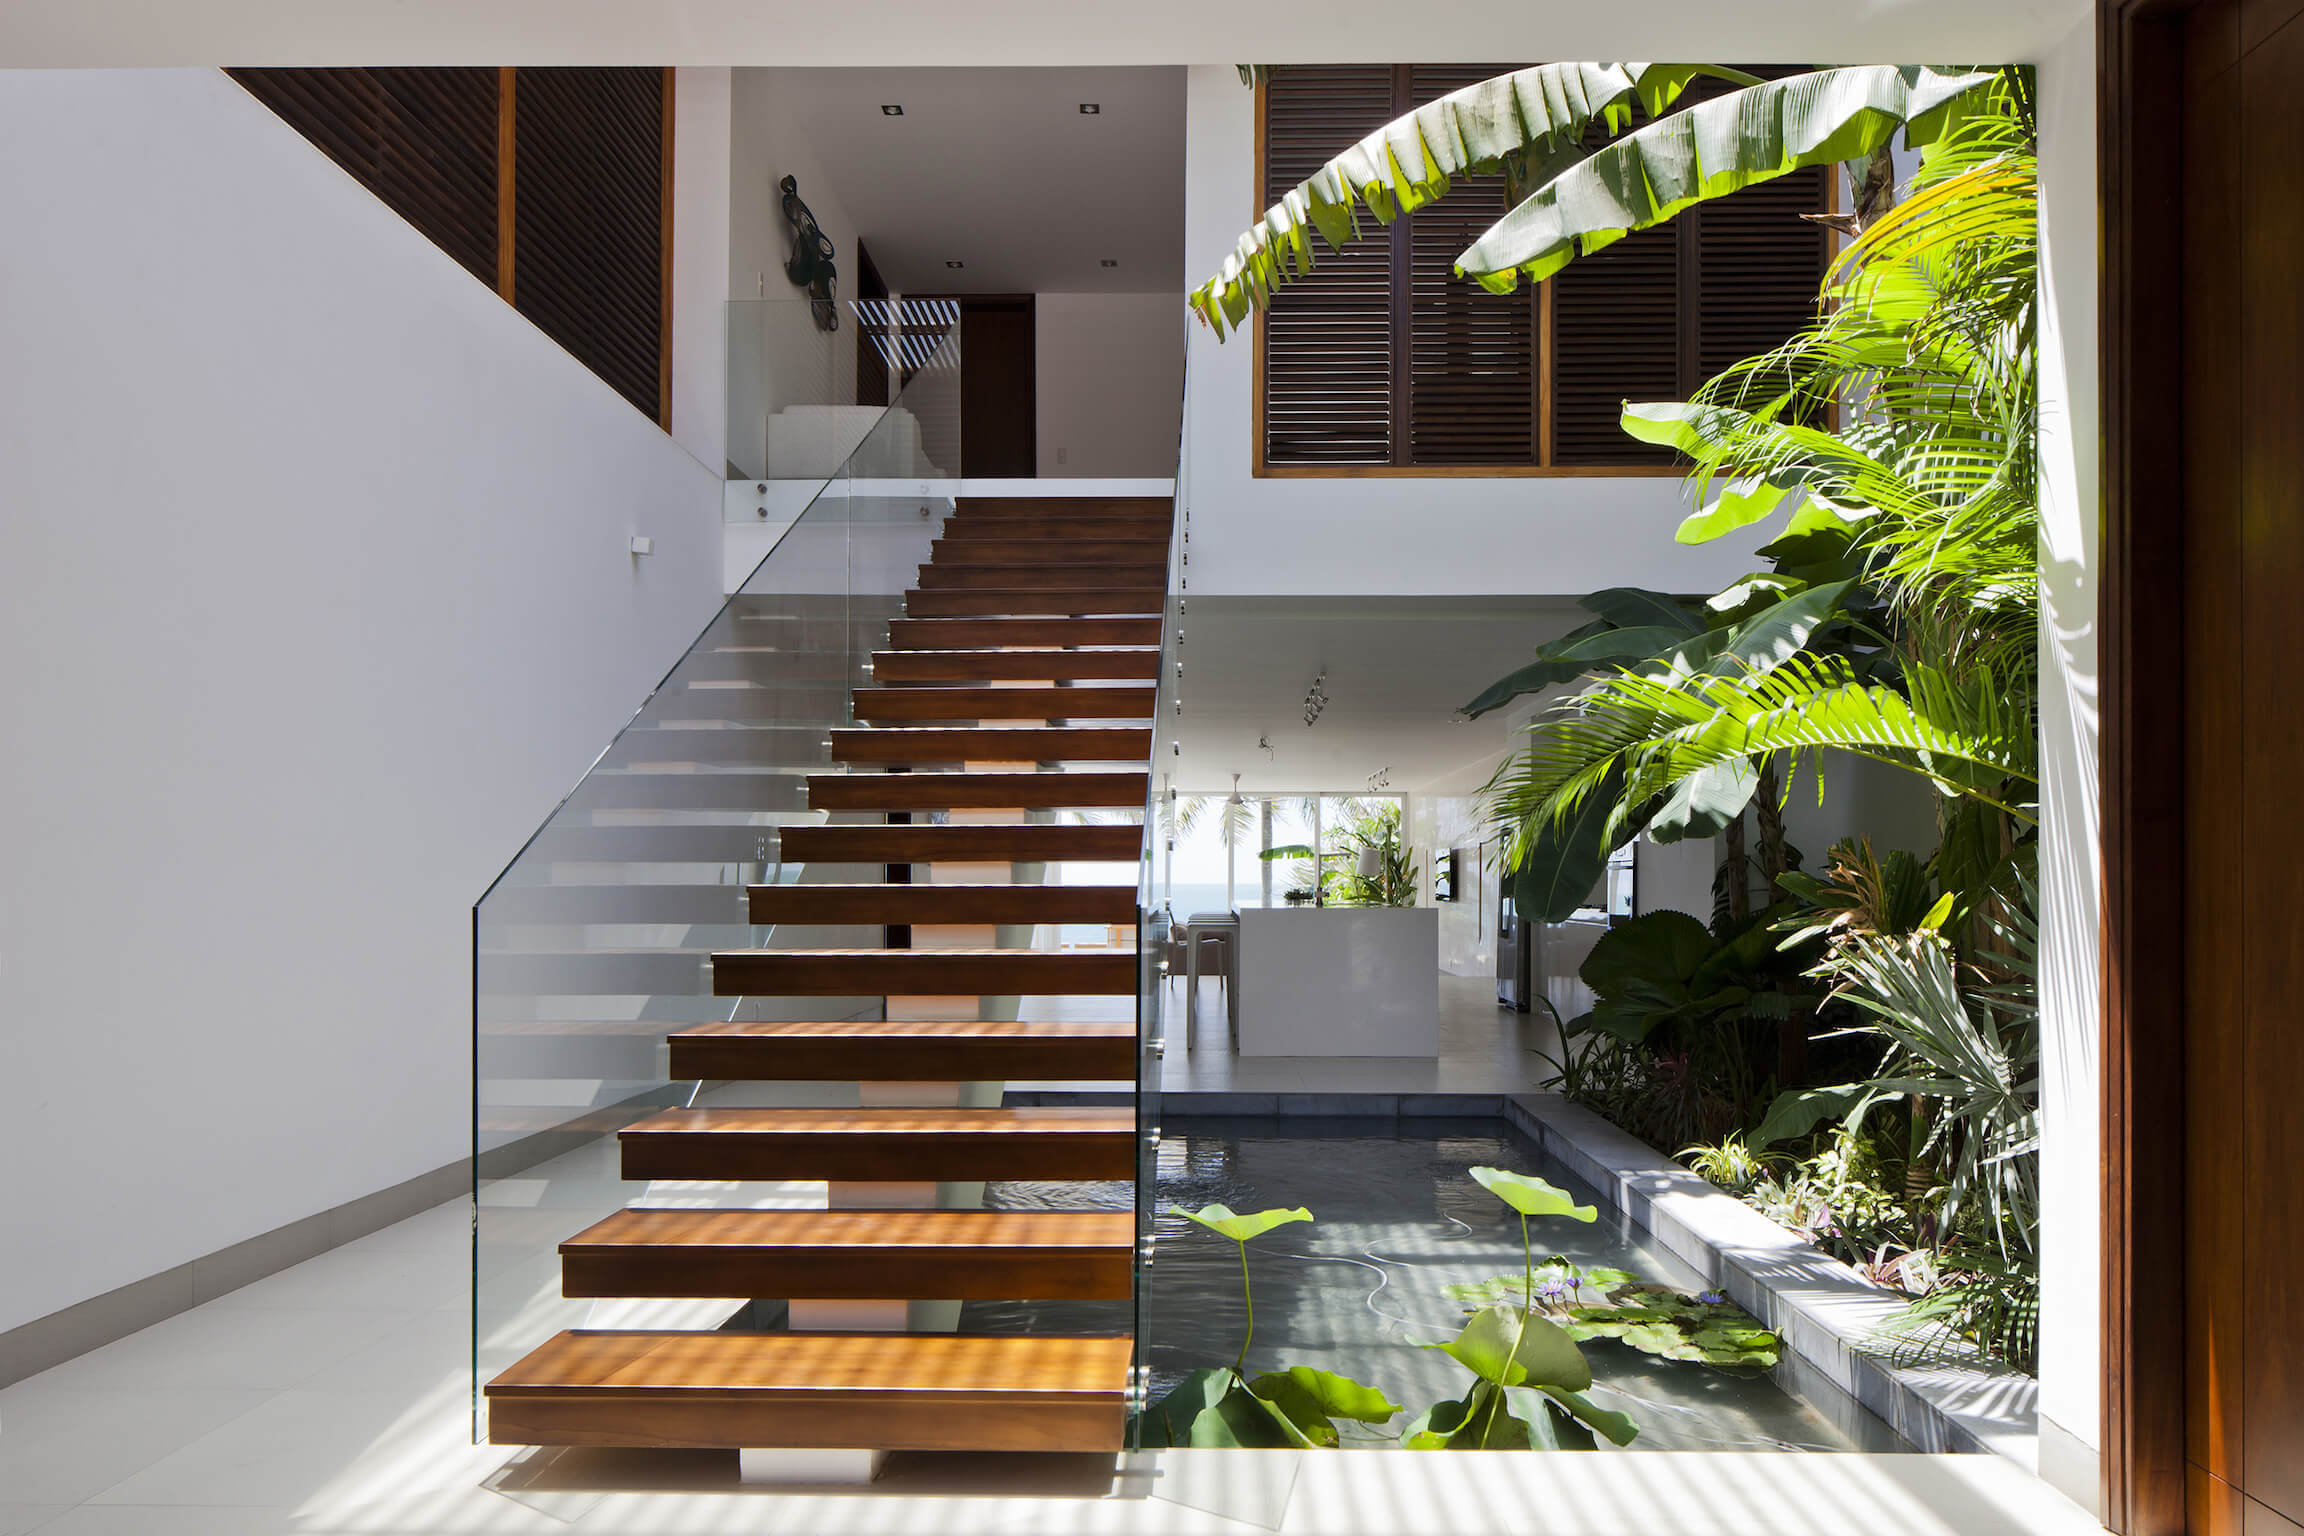 Opposite view in the same home showcases the glass-railing, natural wood staircase and dark louvers on second floor bedrooms.